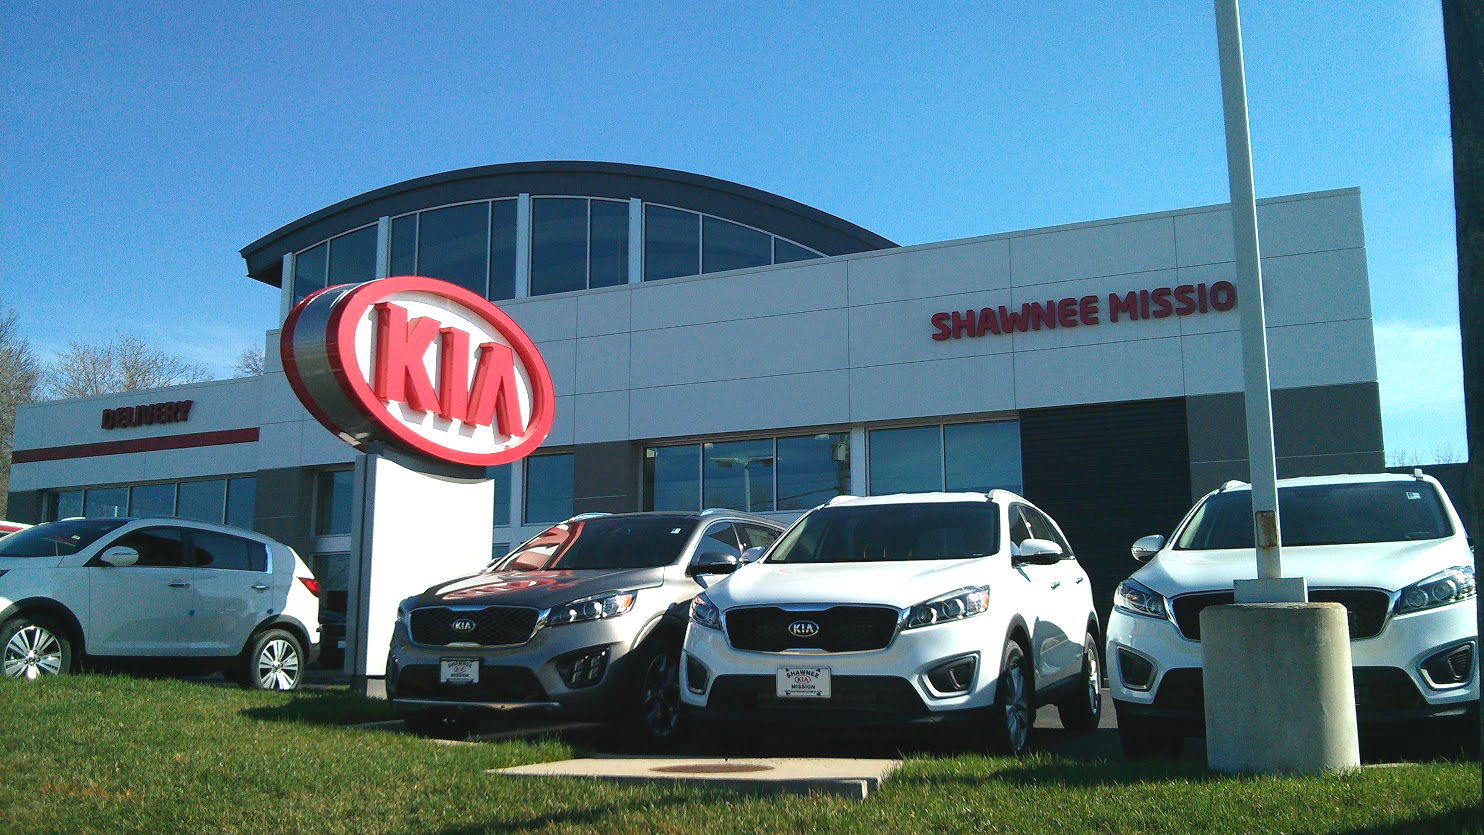 Shawnee mission kia coupons near me in mission 8coupons for Kia motors near me